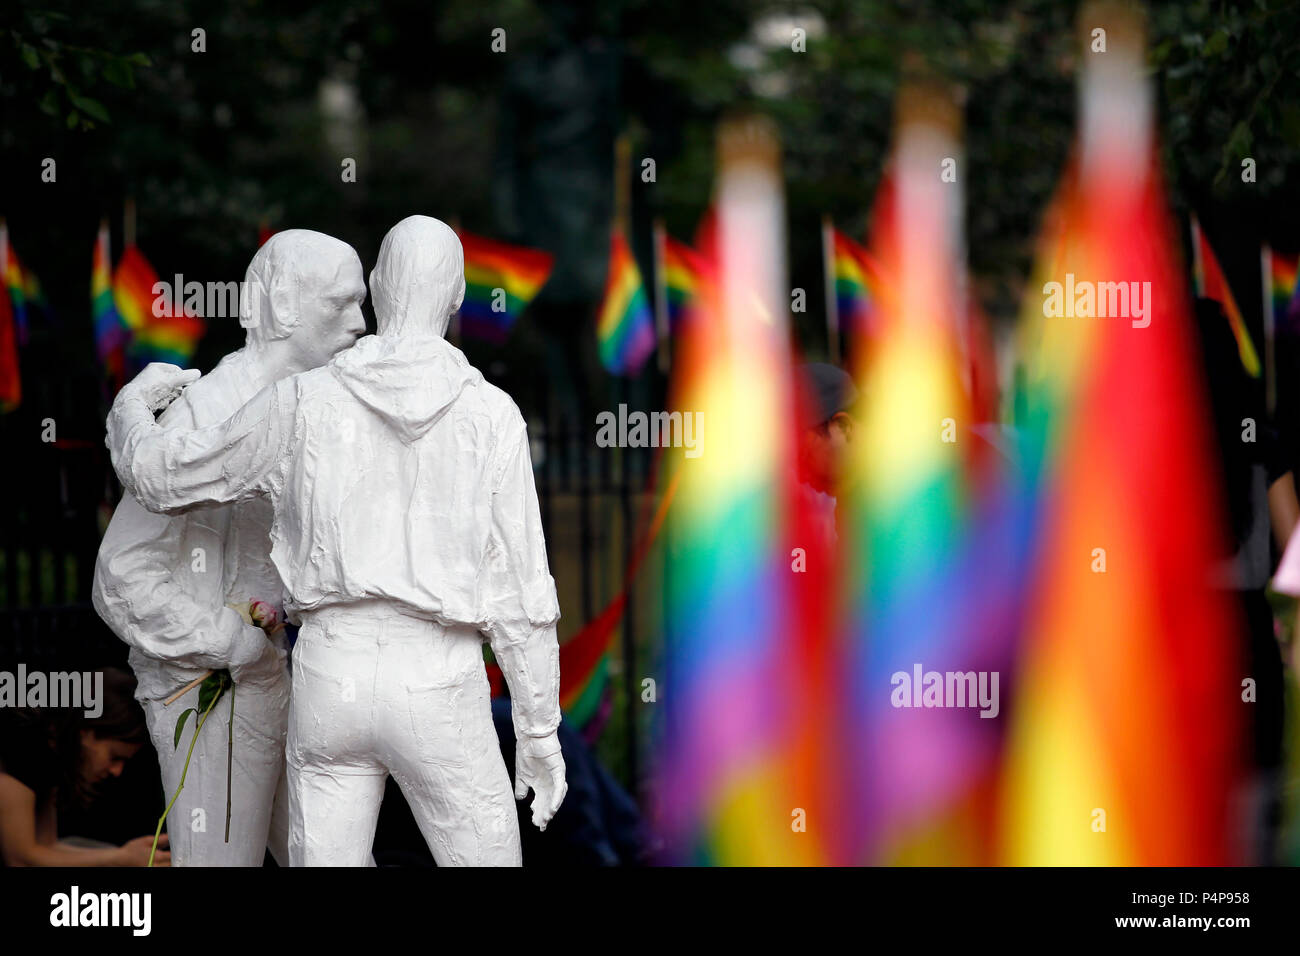 New York, New York, USA. 22nd June, 2018. Statues at Stonewall National Monument in New York City's Greenwich Village commemorate where the Pride movement was born, following a series of demonstrations in response to a police raid of the Stonewall Inn bar in 1969.  The monument is ringed with rainbow flags as Pride events get underway in New York City this weekend, including this Sunday's Pride march. Credit: Adam Stoltman/Alamy Live News Stock Photo